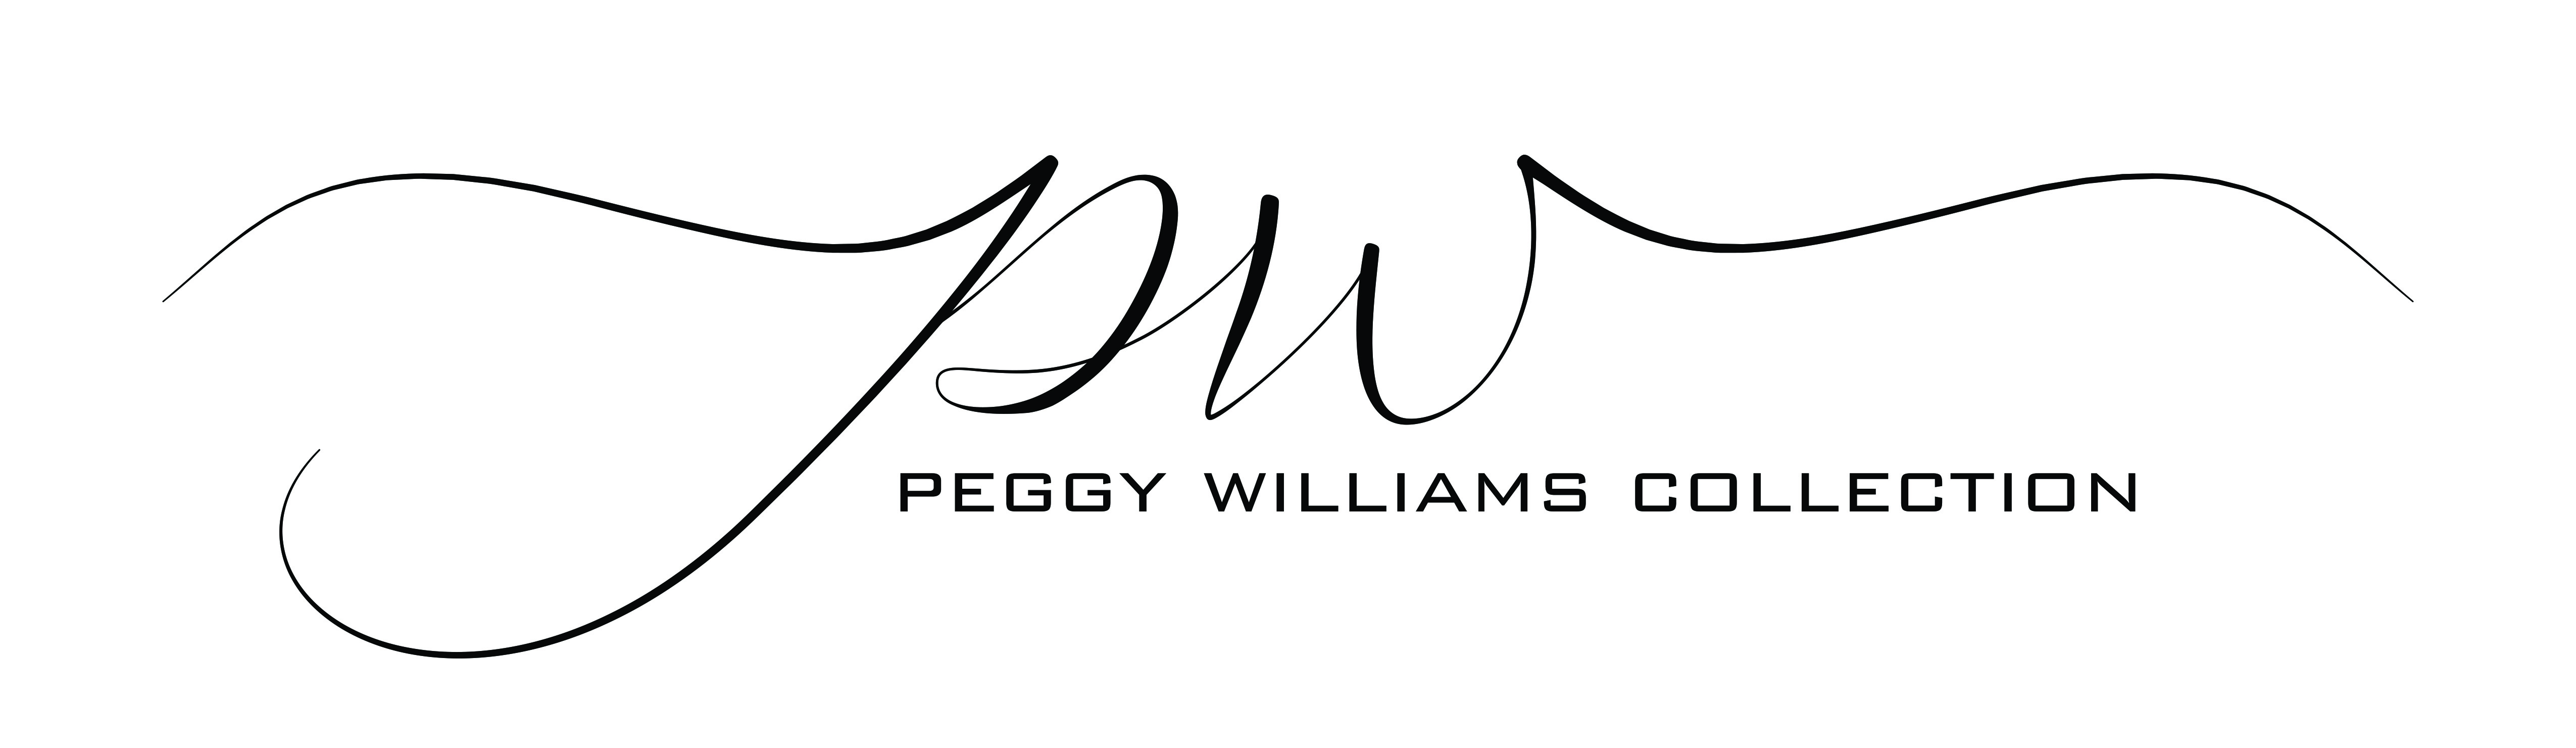 The Peggy Williams Collection